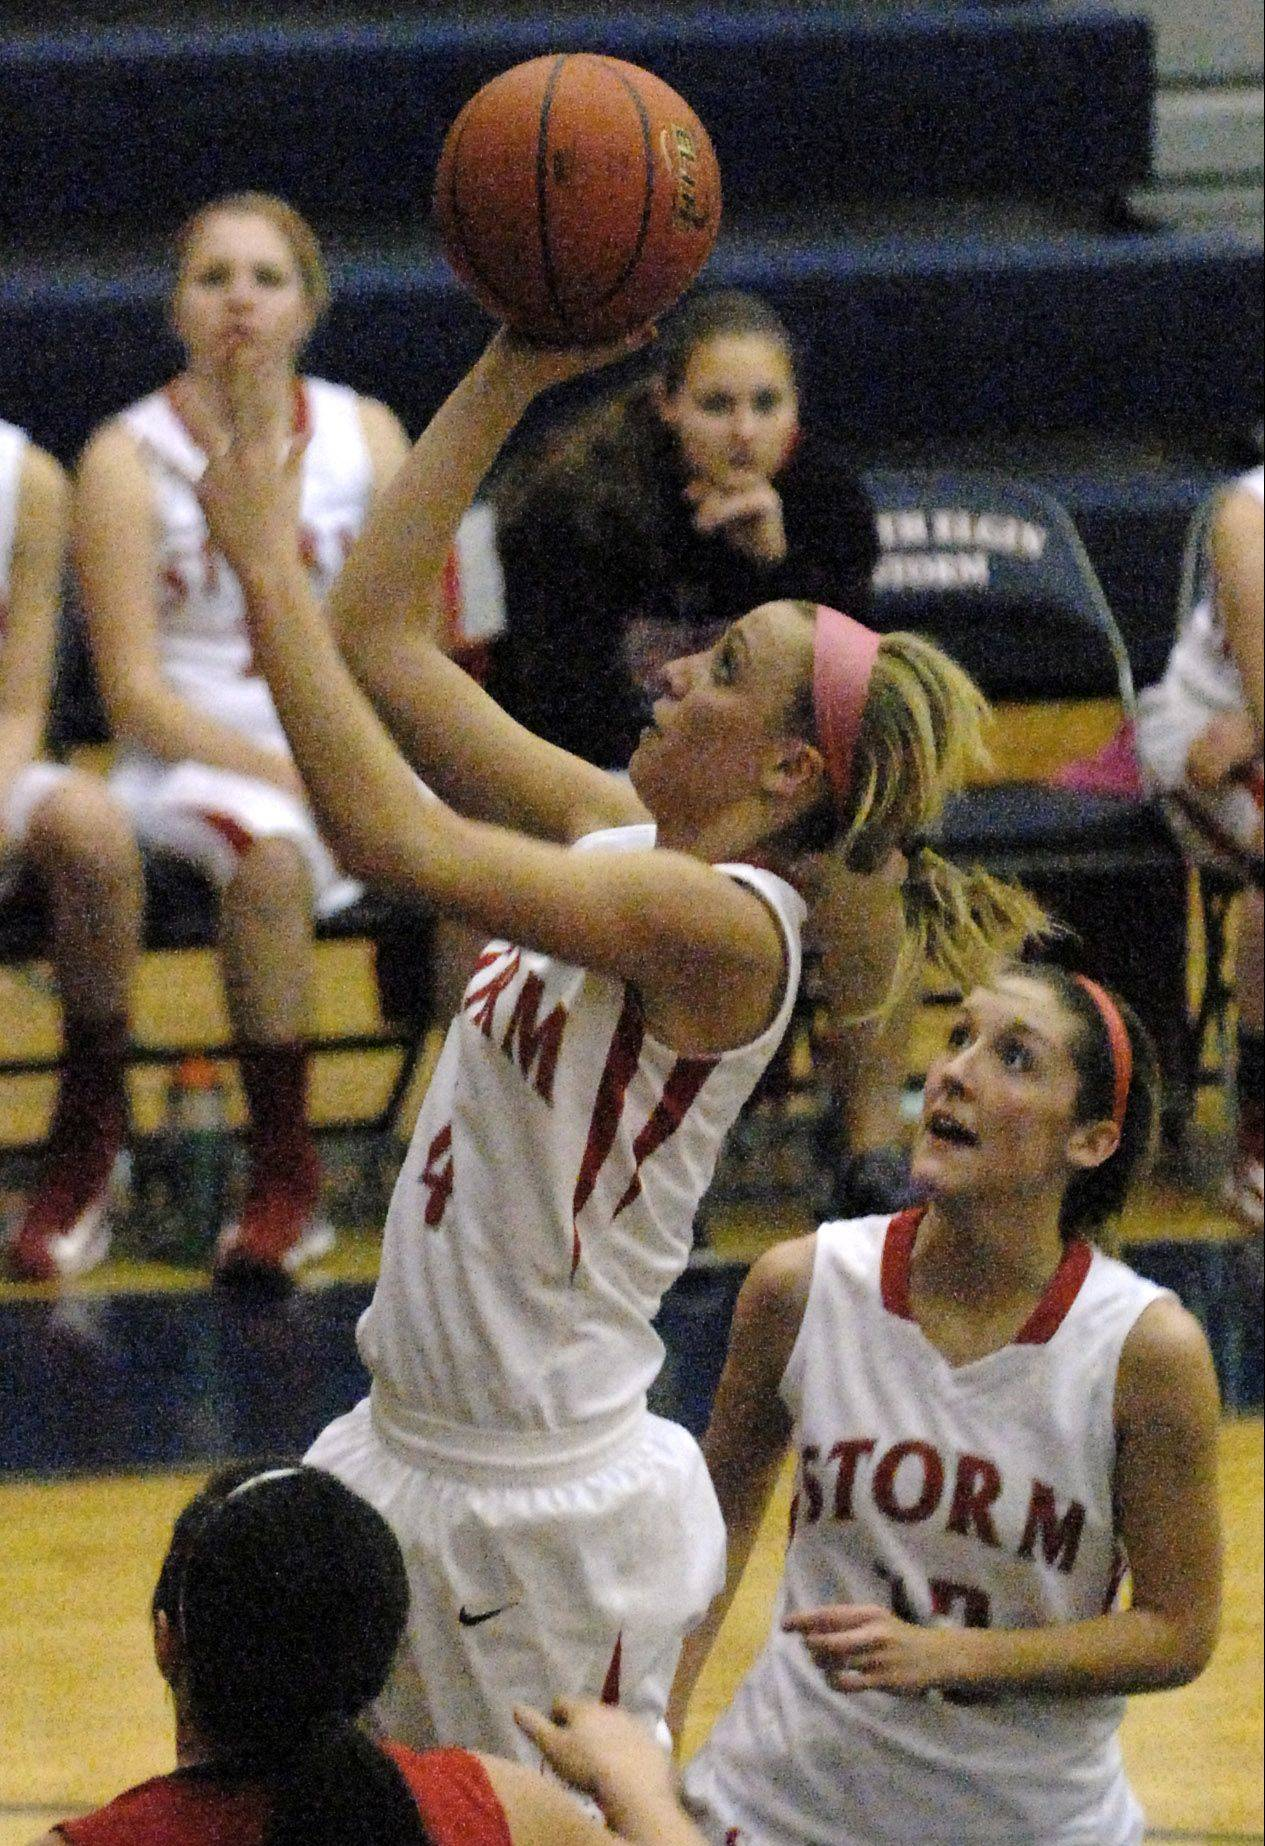 South Elgin�s Savanah Uveges scores on a runner during Thursday�s game against Batavia in South Elgin.